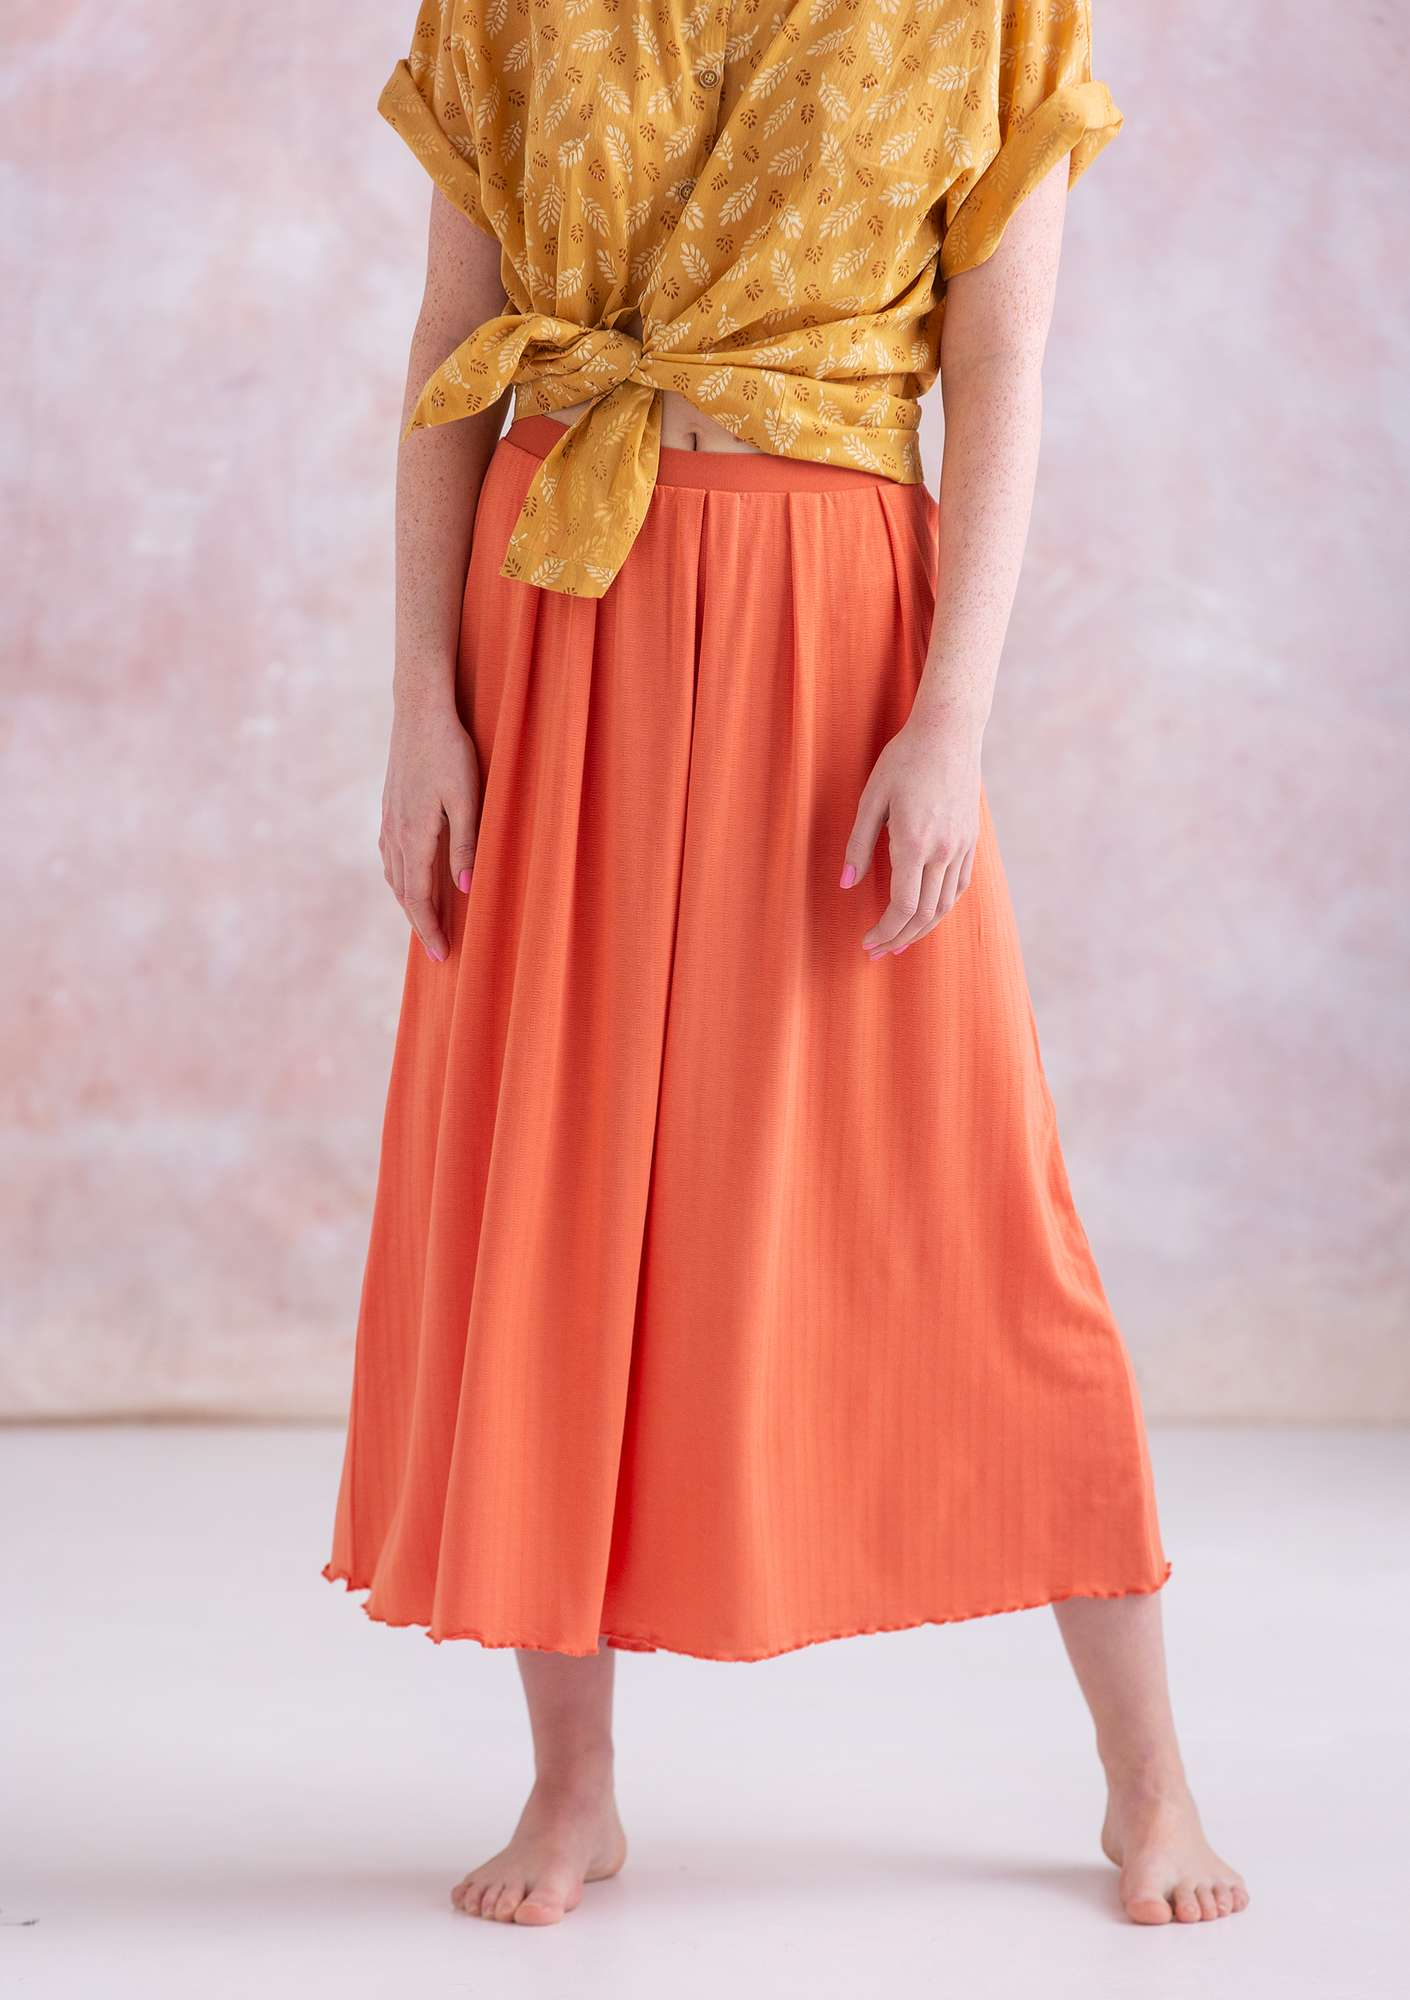 Skirt in micromodal/spandex papaya